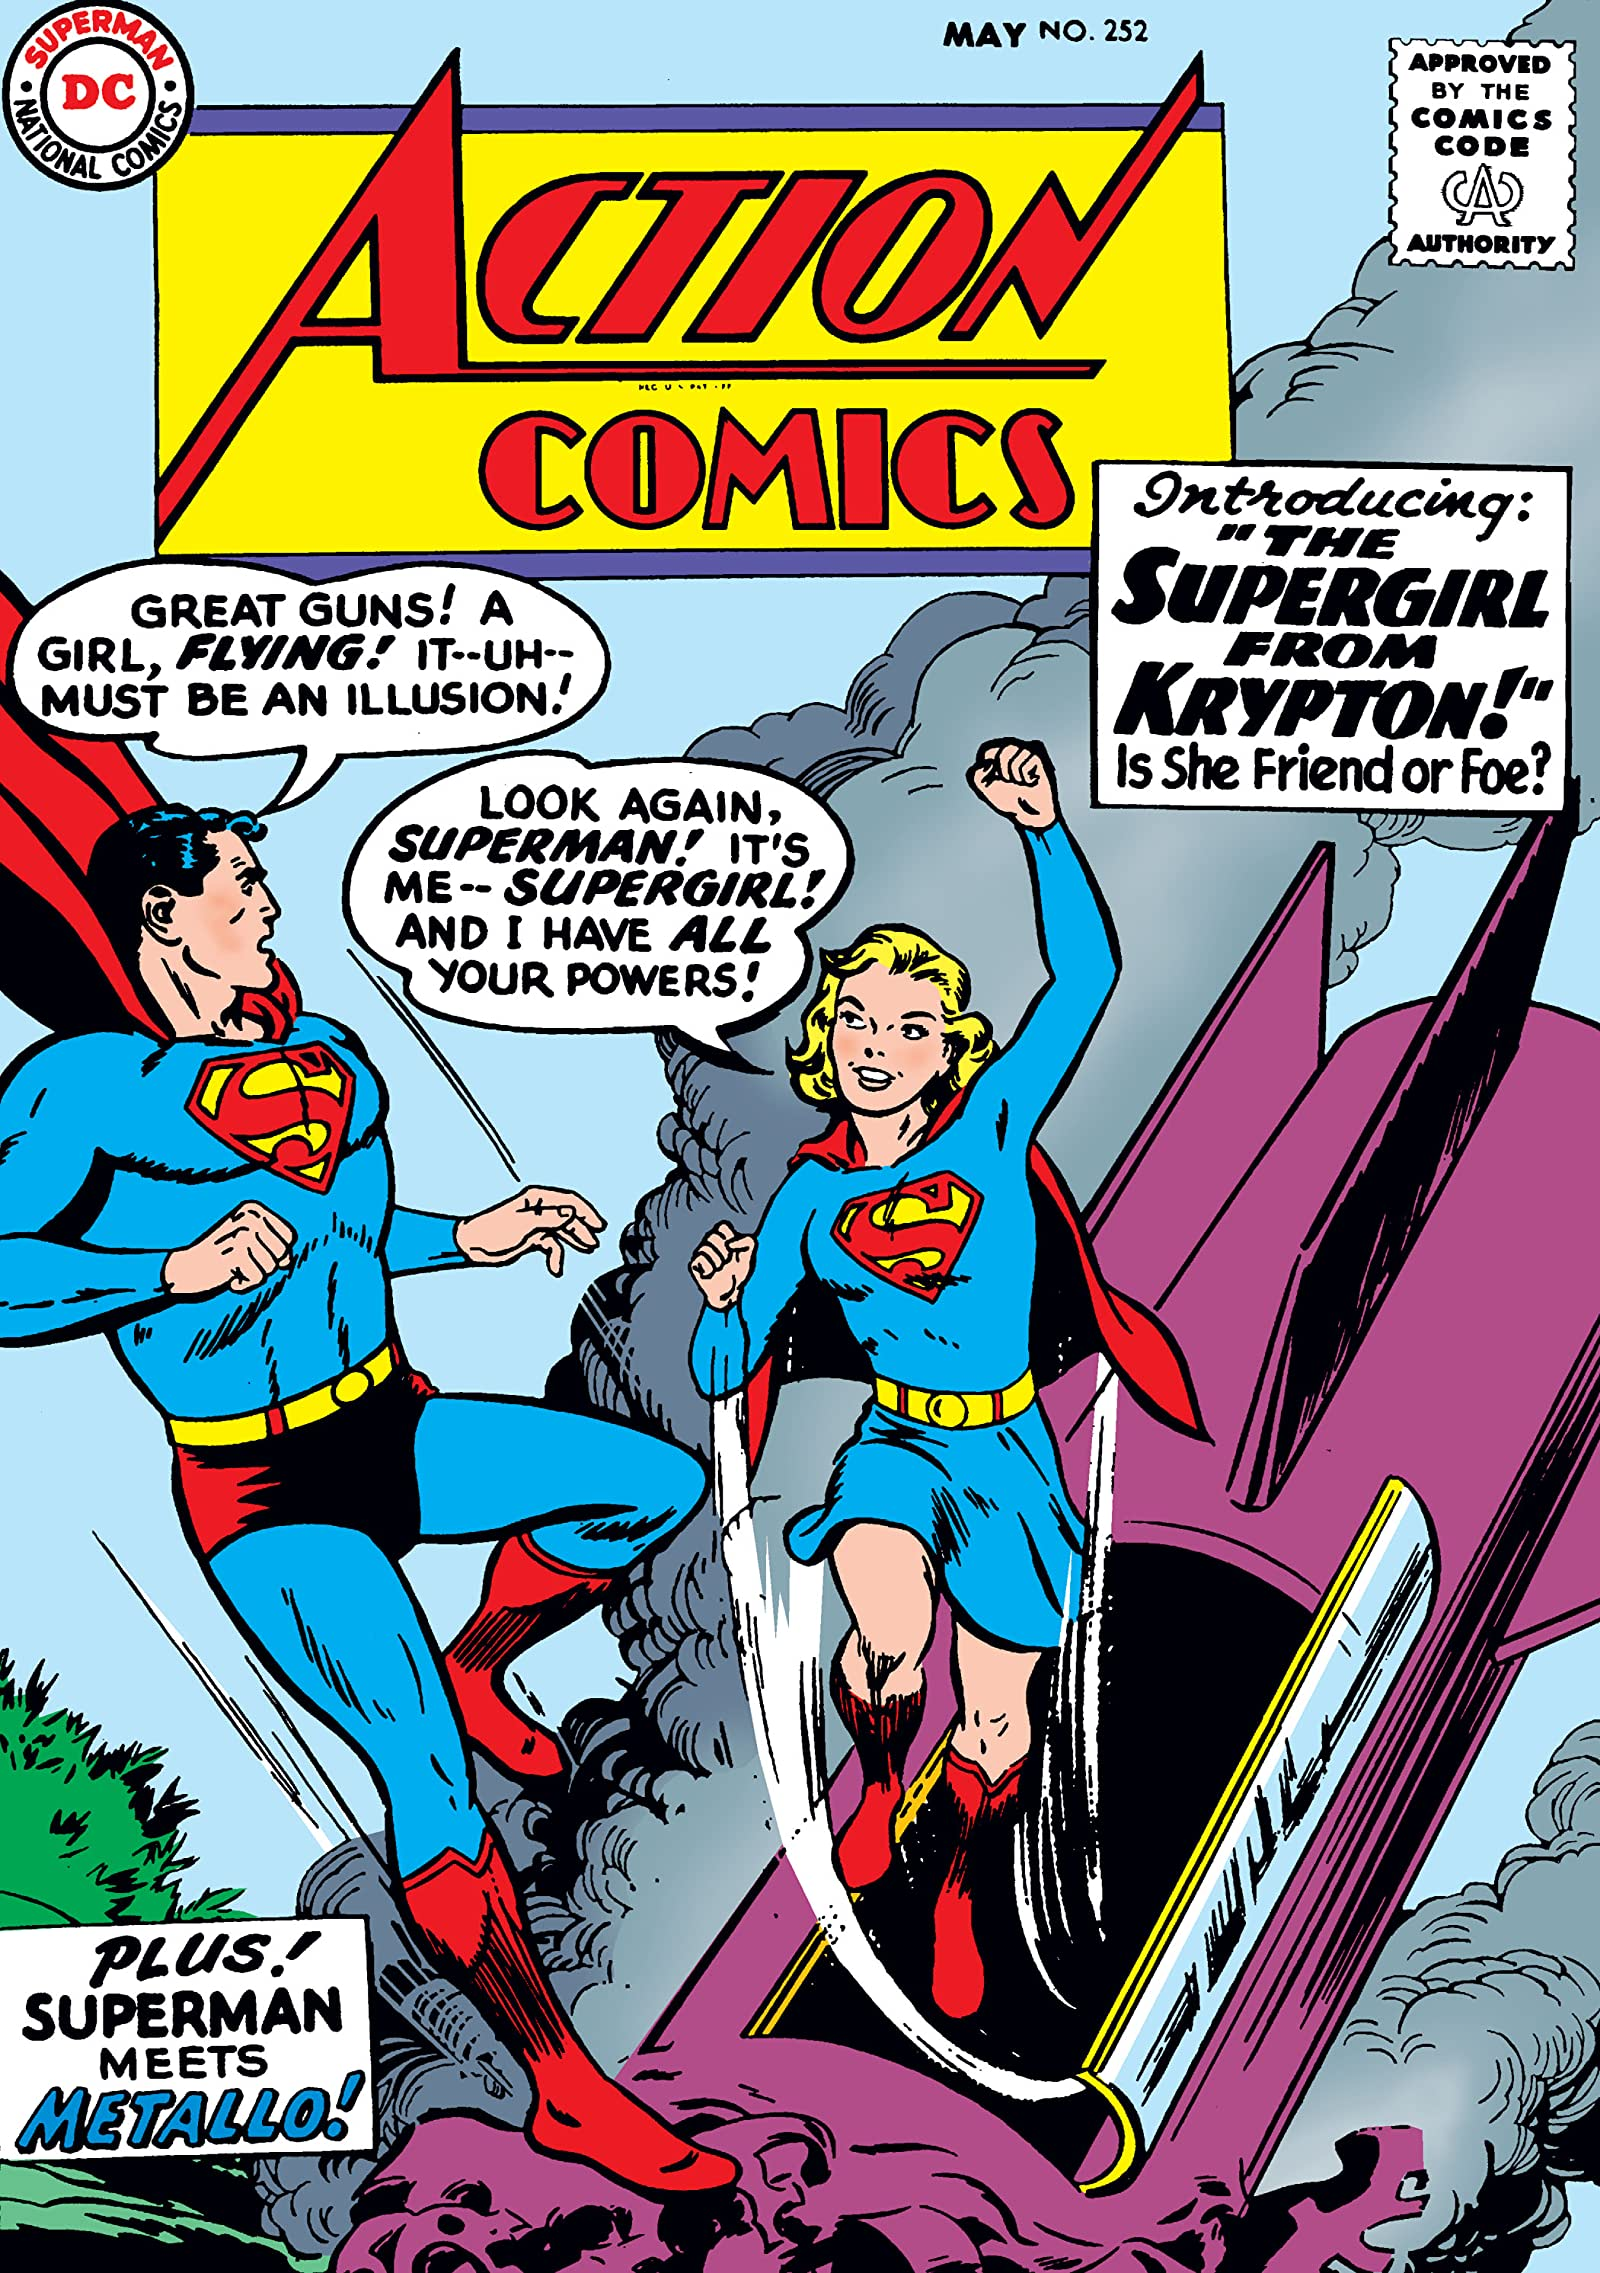 Action Comics #252, the first appearance of Supergirl